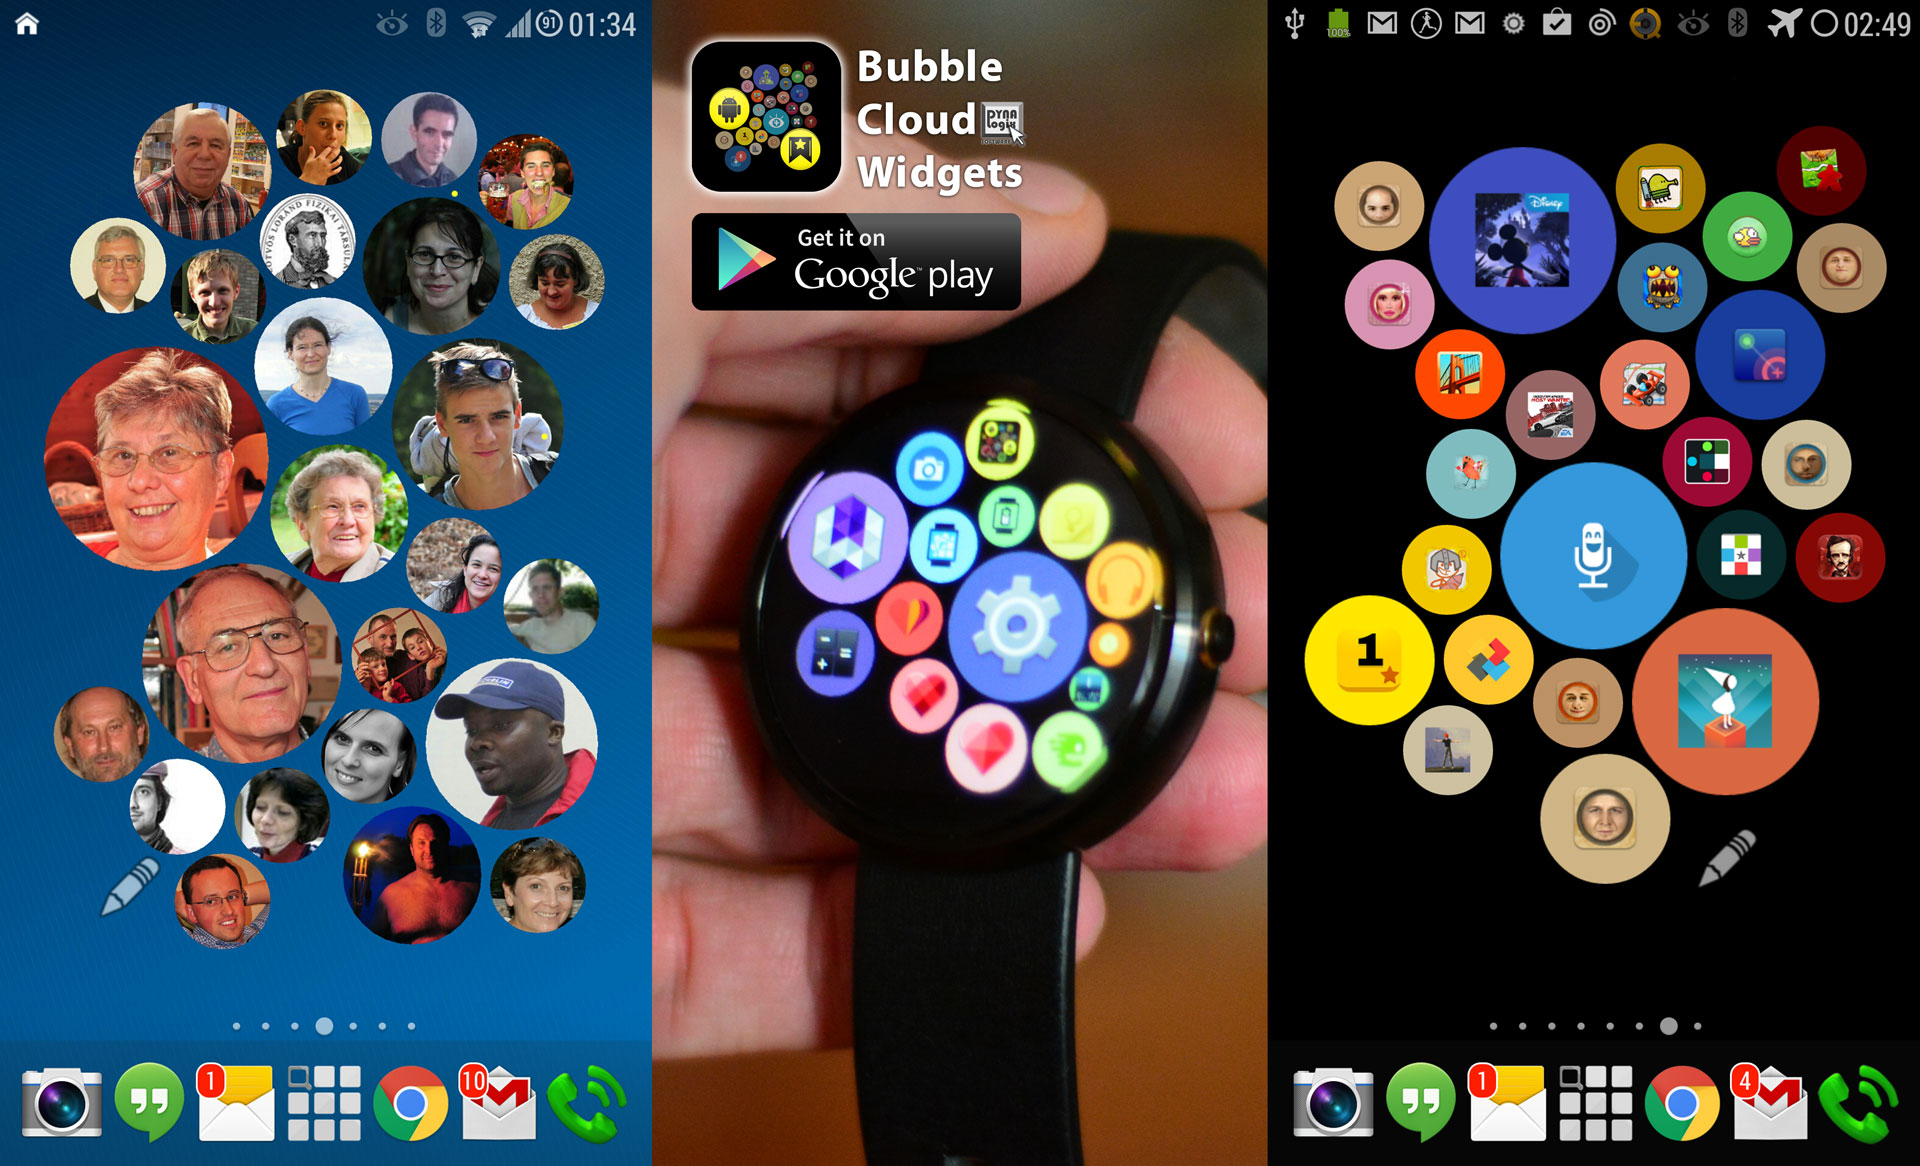 Bubble Cloud Widgets and Android Wear Launcher